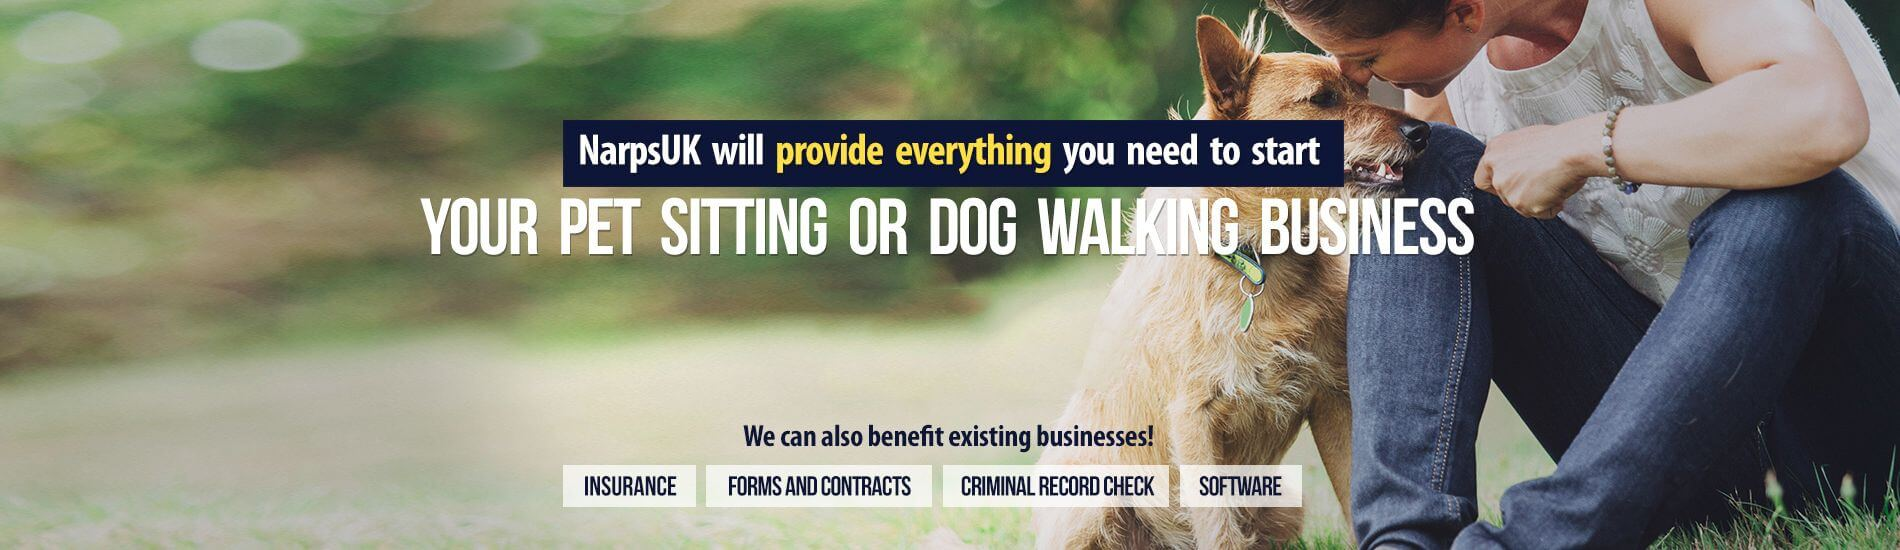 Your Dog walking Business